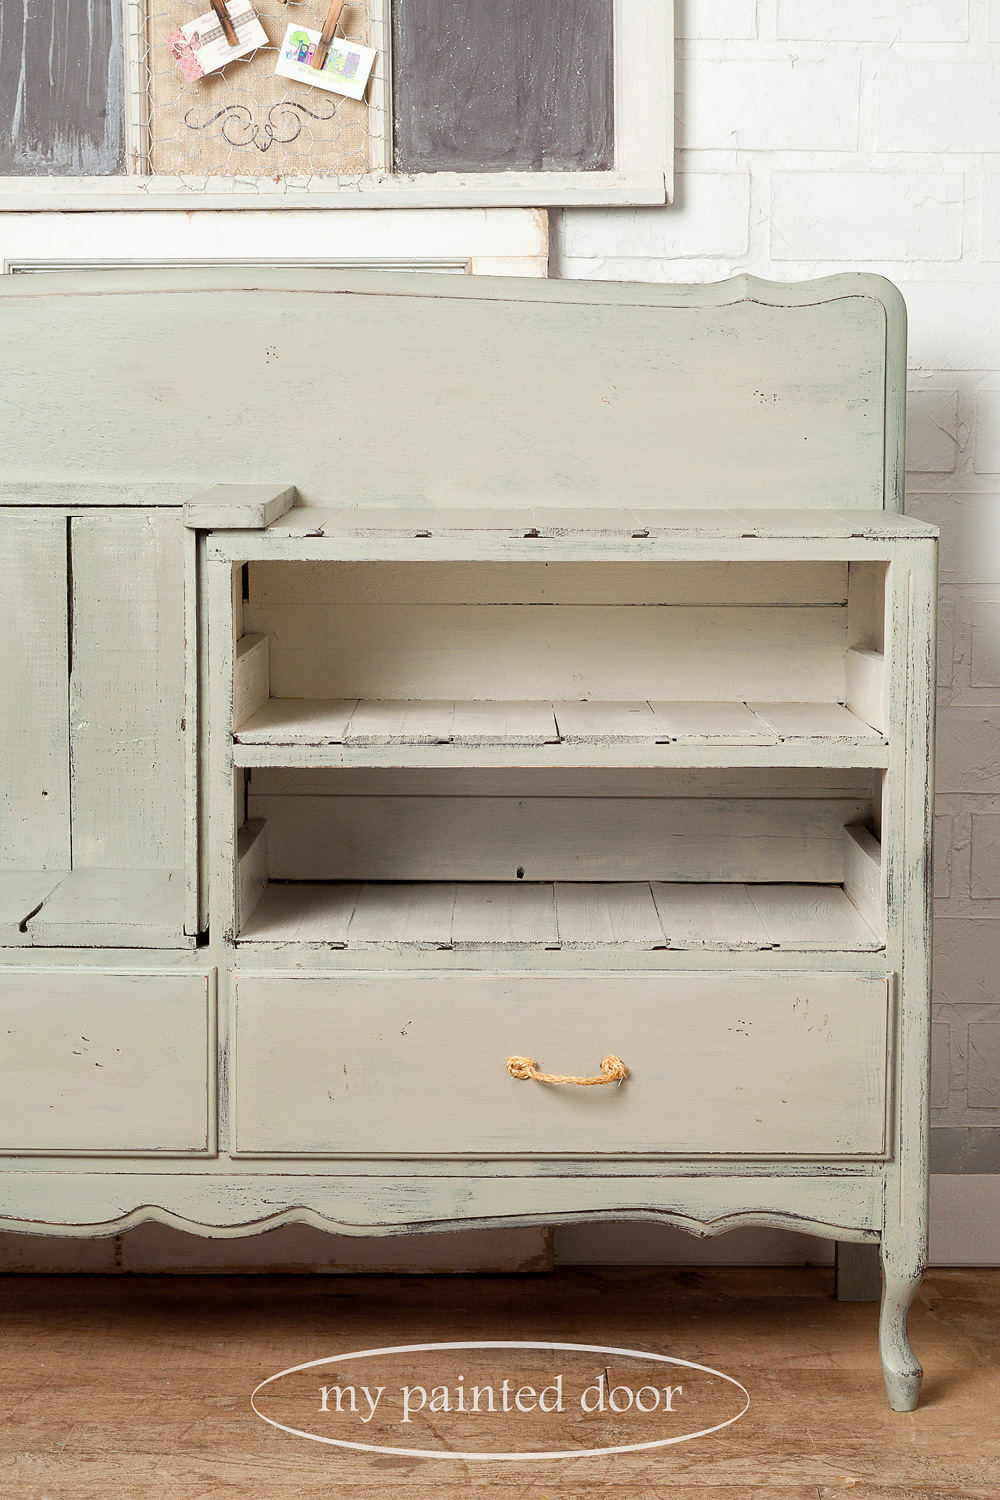 Habitat for Humanity Upcycle Challenge - dresser turned into a bench and painted with Homestead House Milk Paint